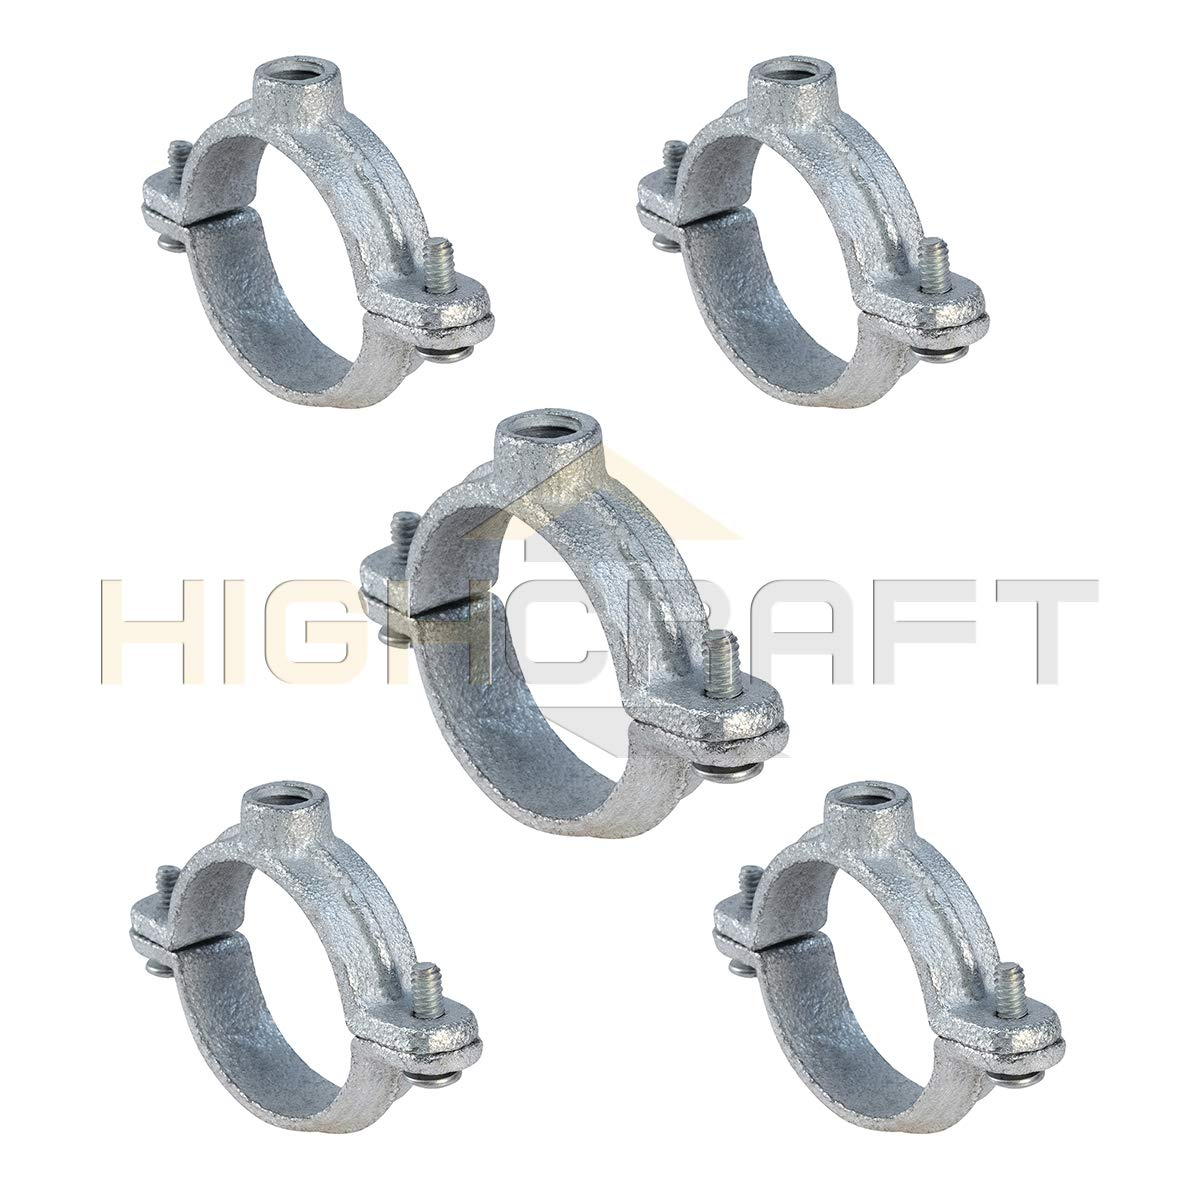 Highcraft HST-G04-5 2PC Split Ring Pipe Hanger Galvanized Iron, 4 inches, Chrome, 5 Pack by Highcraft